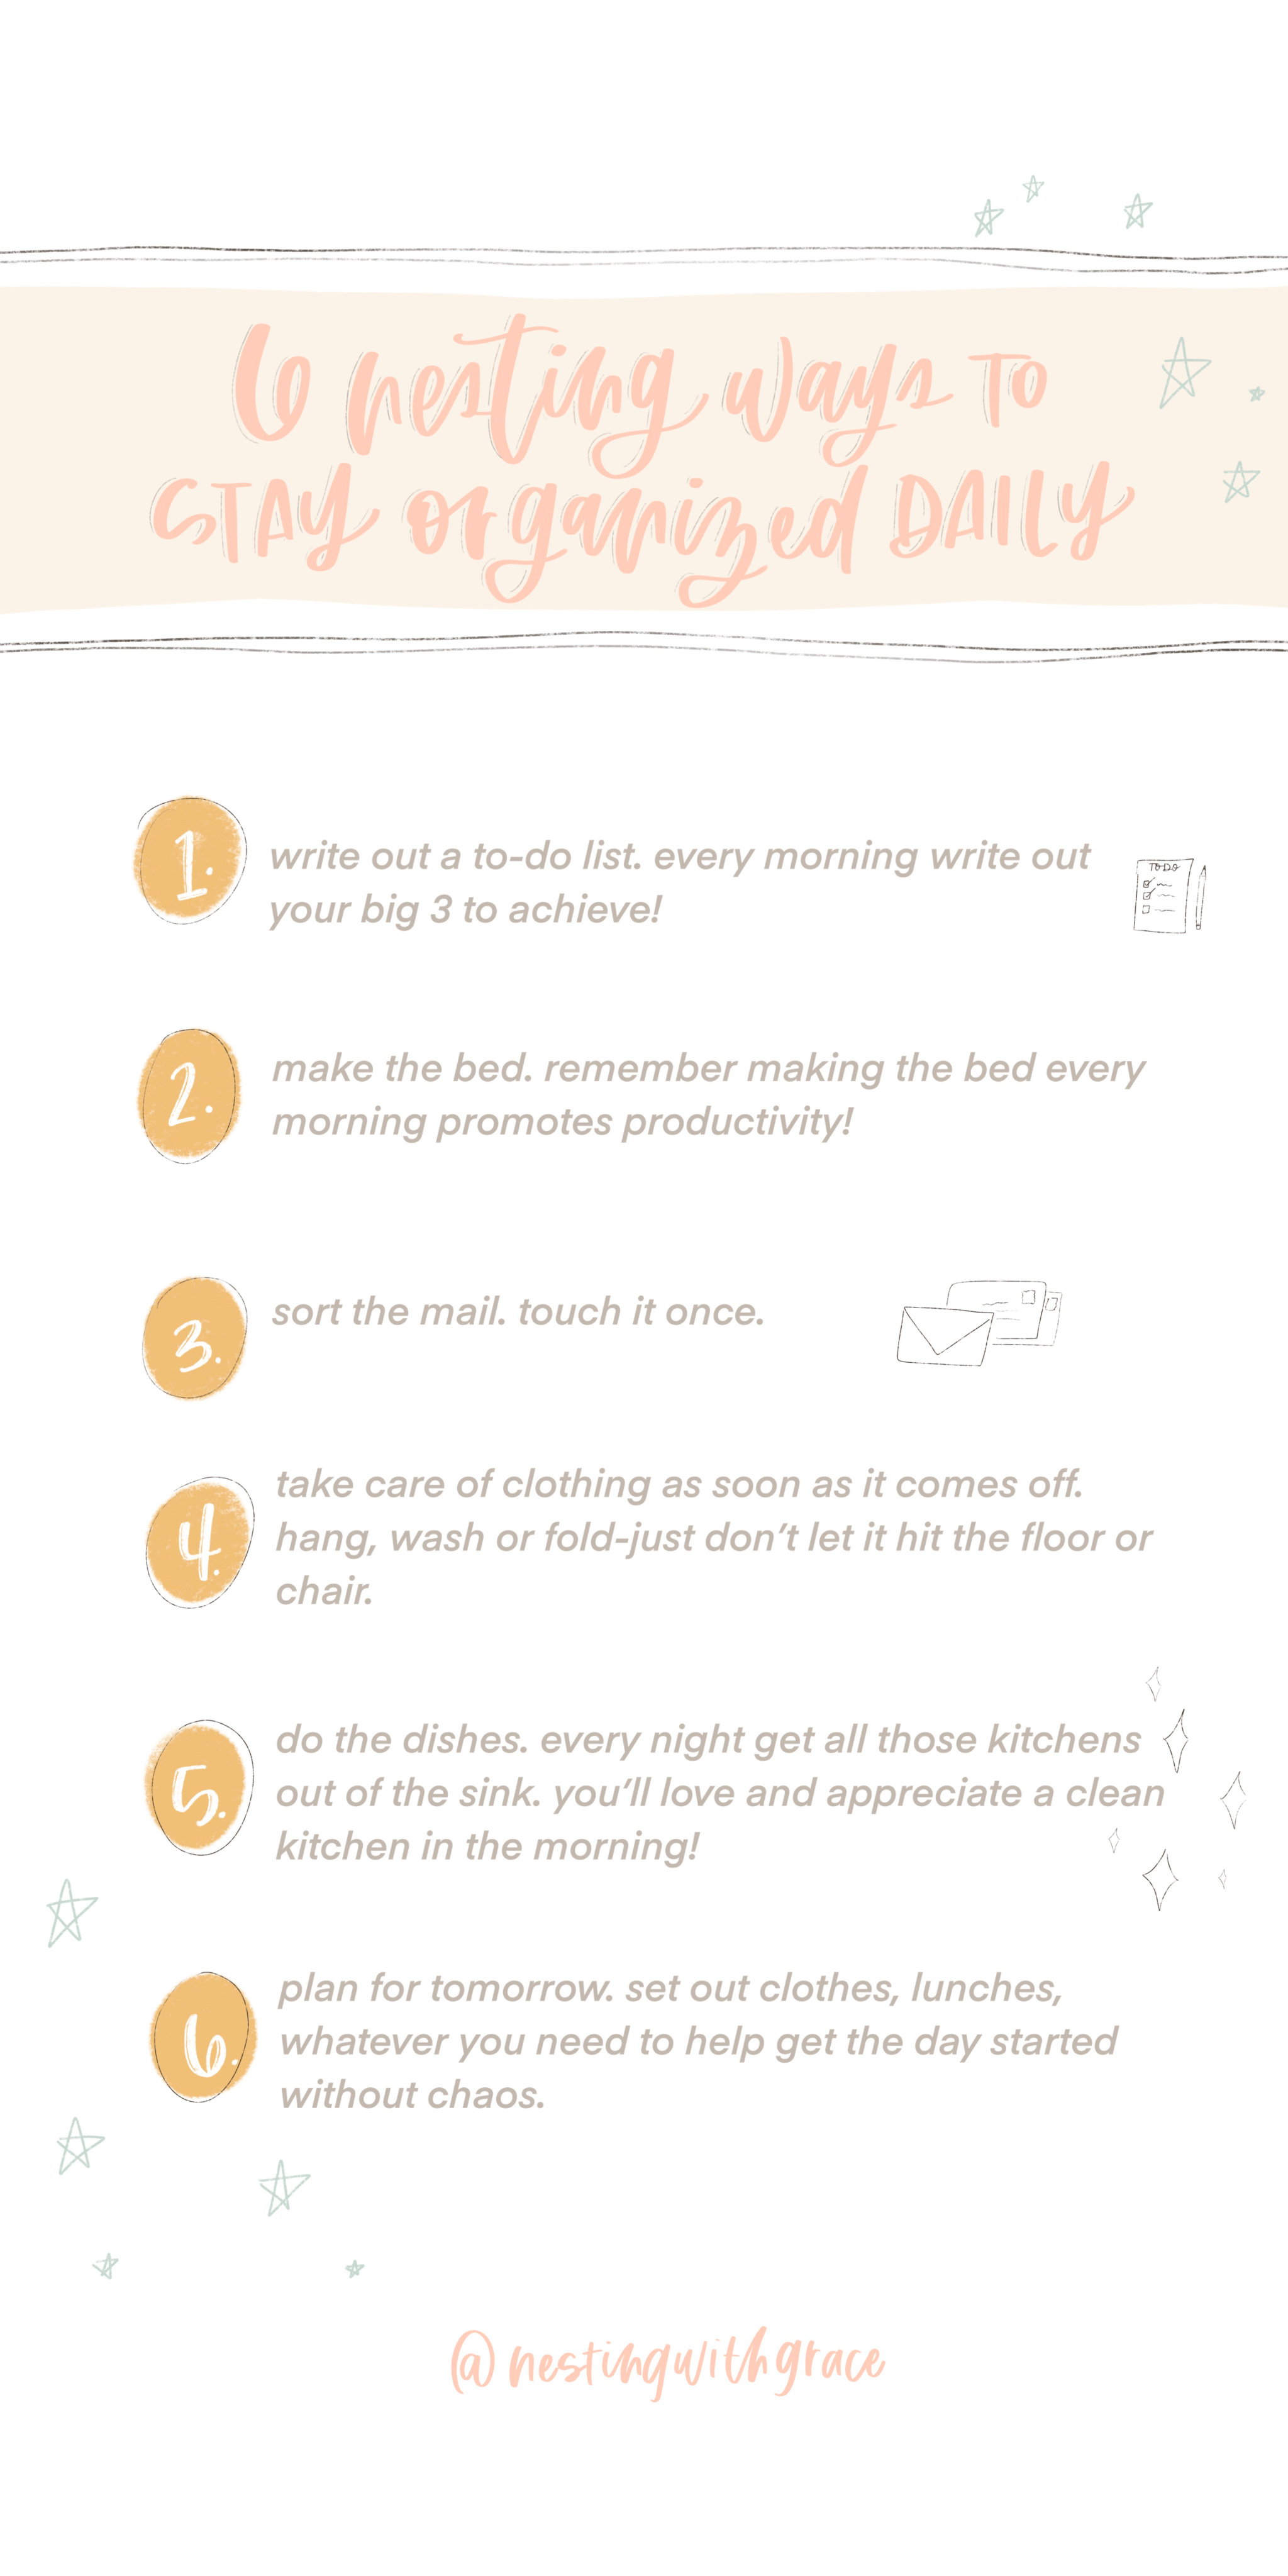 Let's Organize- Organizing Checklist By Room